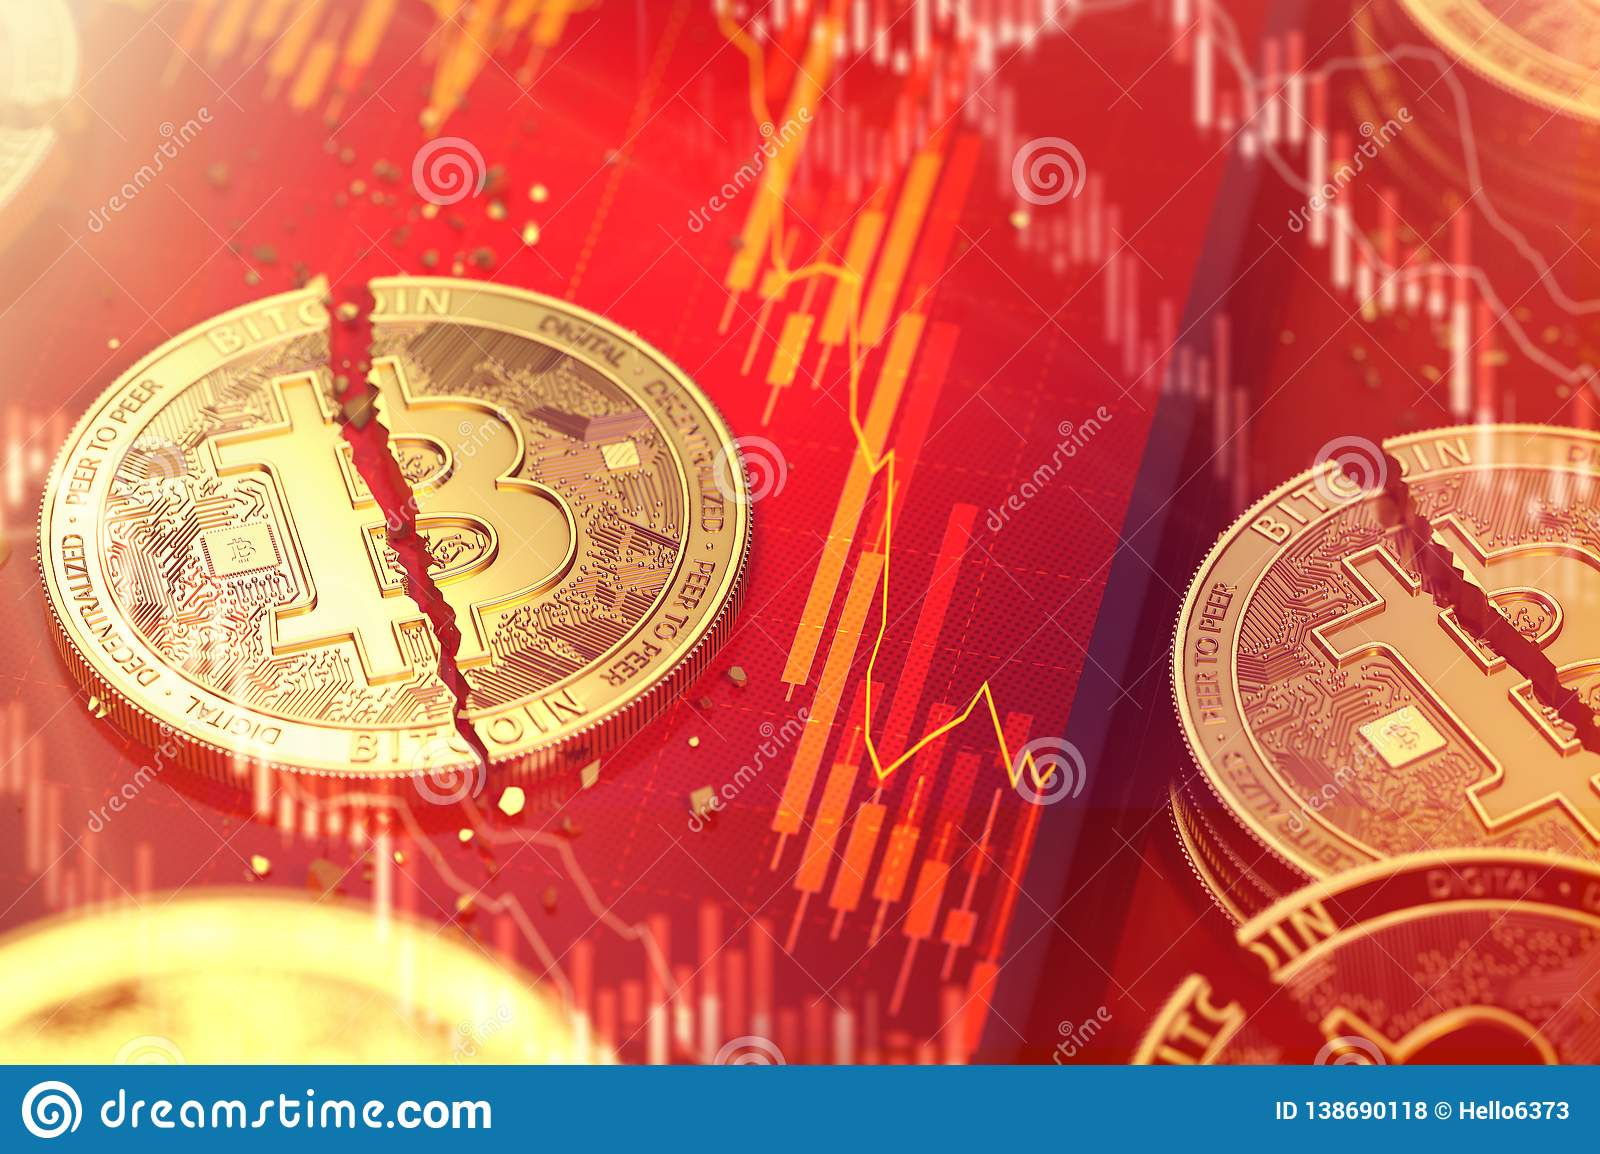 Close-up shot of Broken bitcoin split in two pieces laying on a smartphone screen with stock-market diagram in red color. 3D